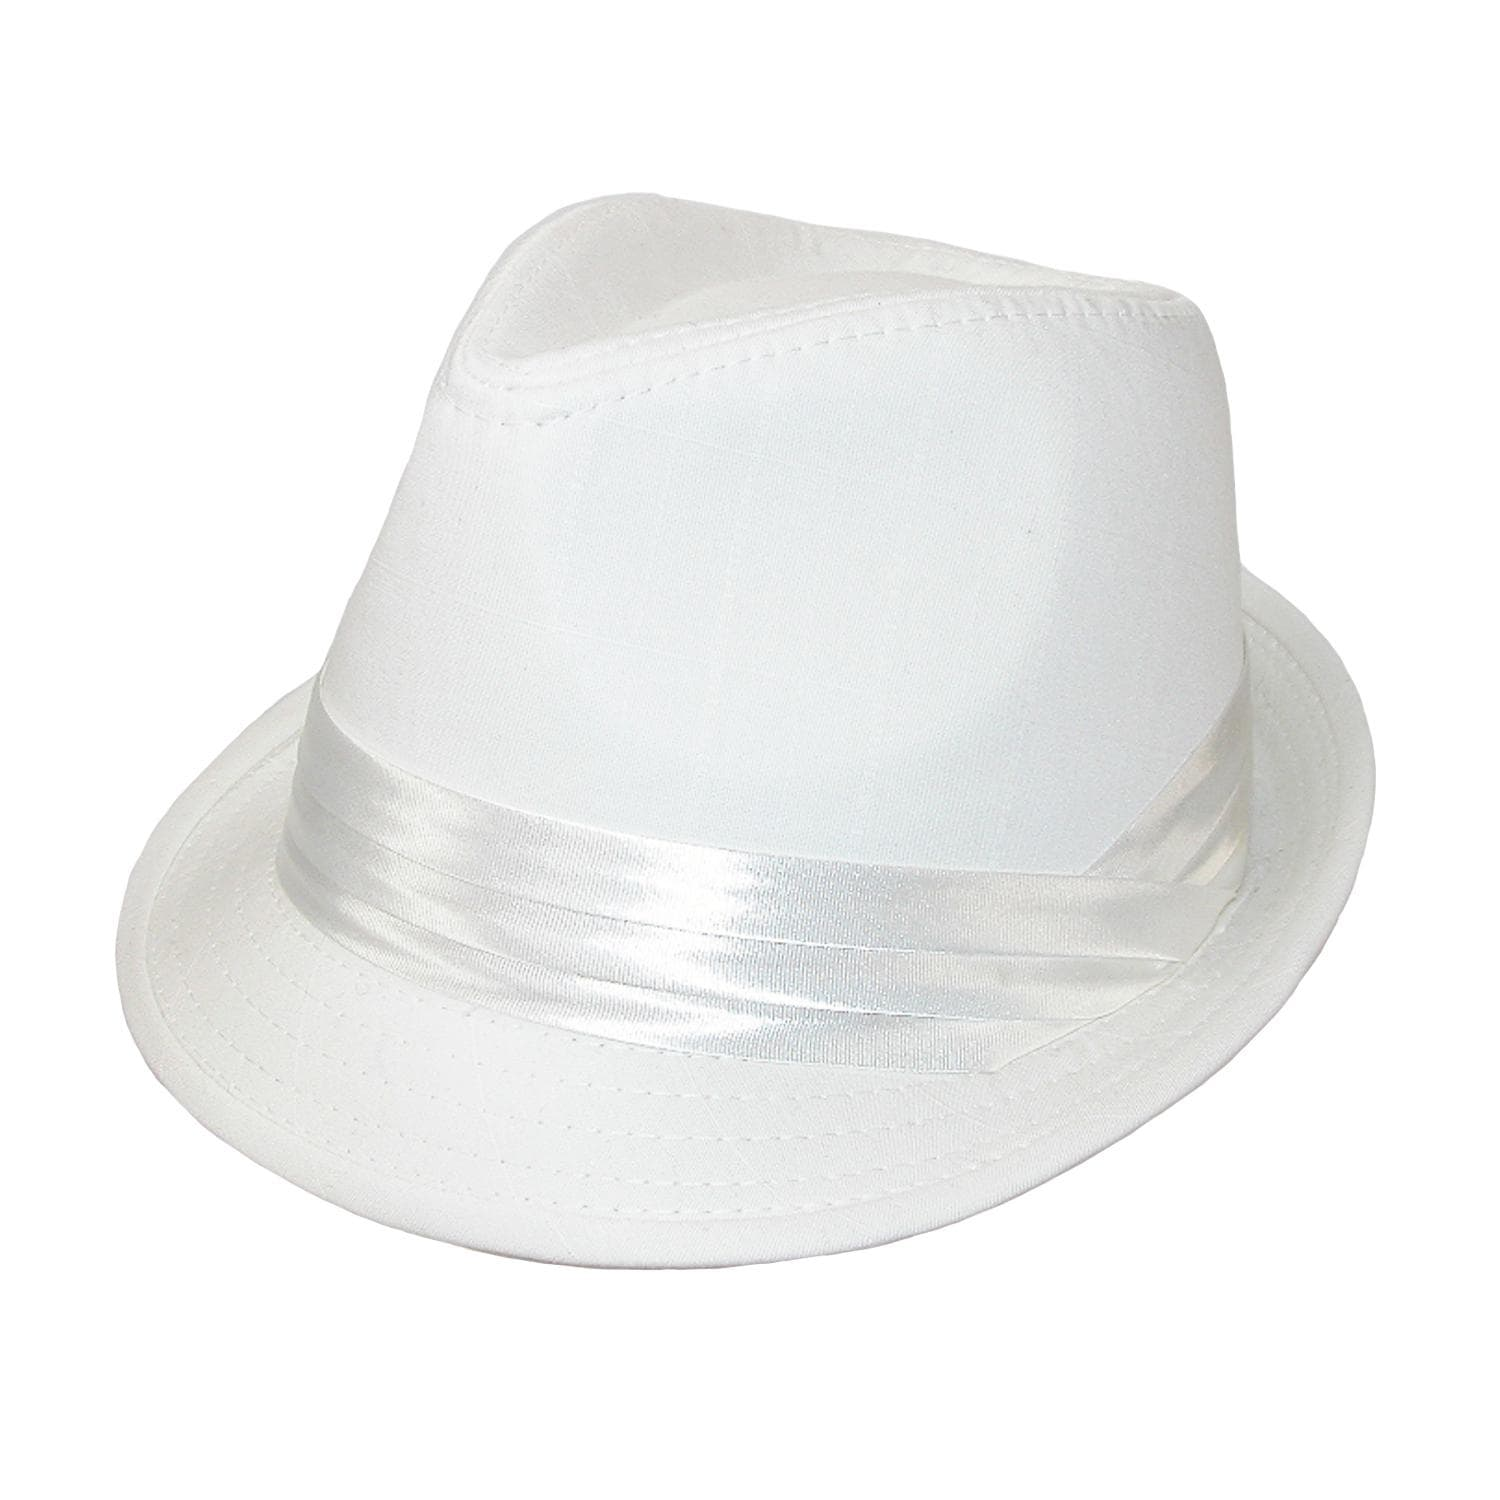 d373164a237 Shop Kenny K Men s Wedding Dress Formal Fedora Hat - Free Shipping On  Orders Over  45 - Overstock - 14278966